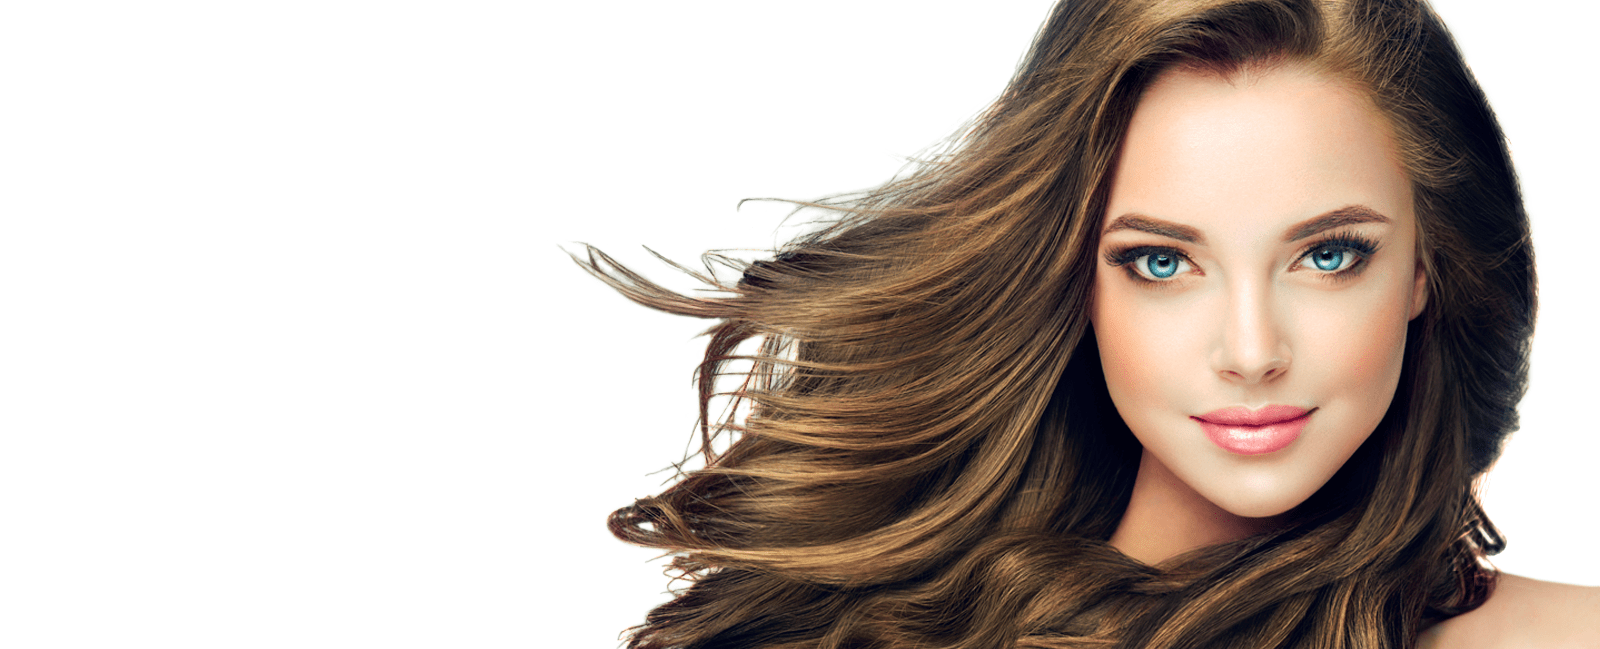 Salon Hair Home Glass Hair Salon